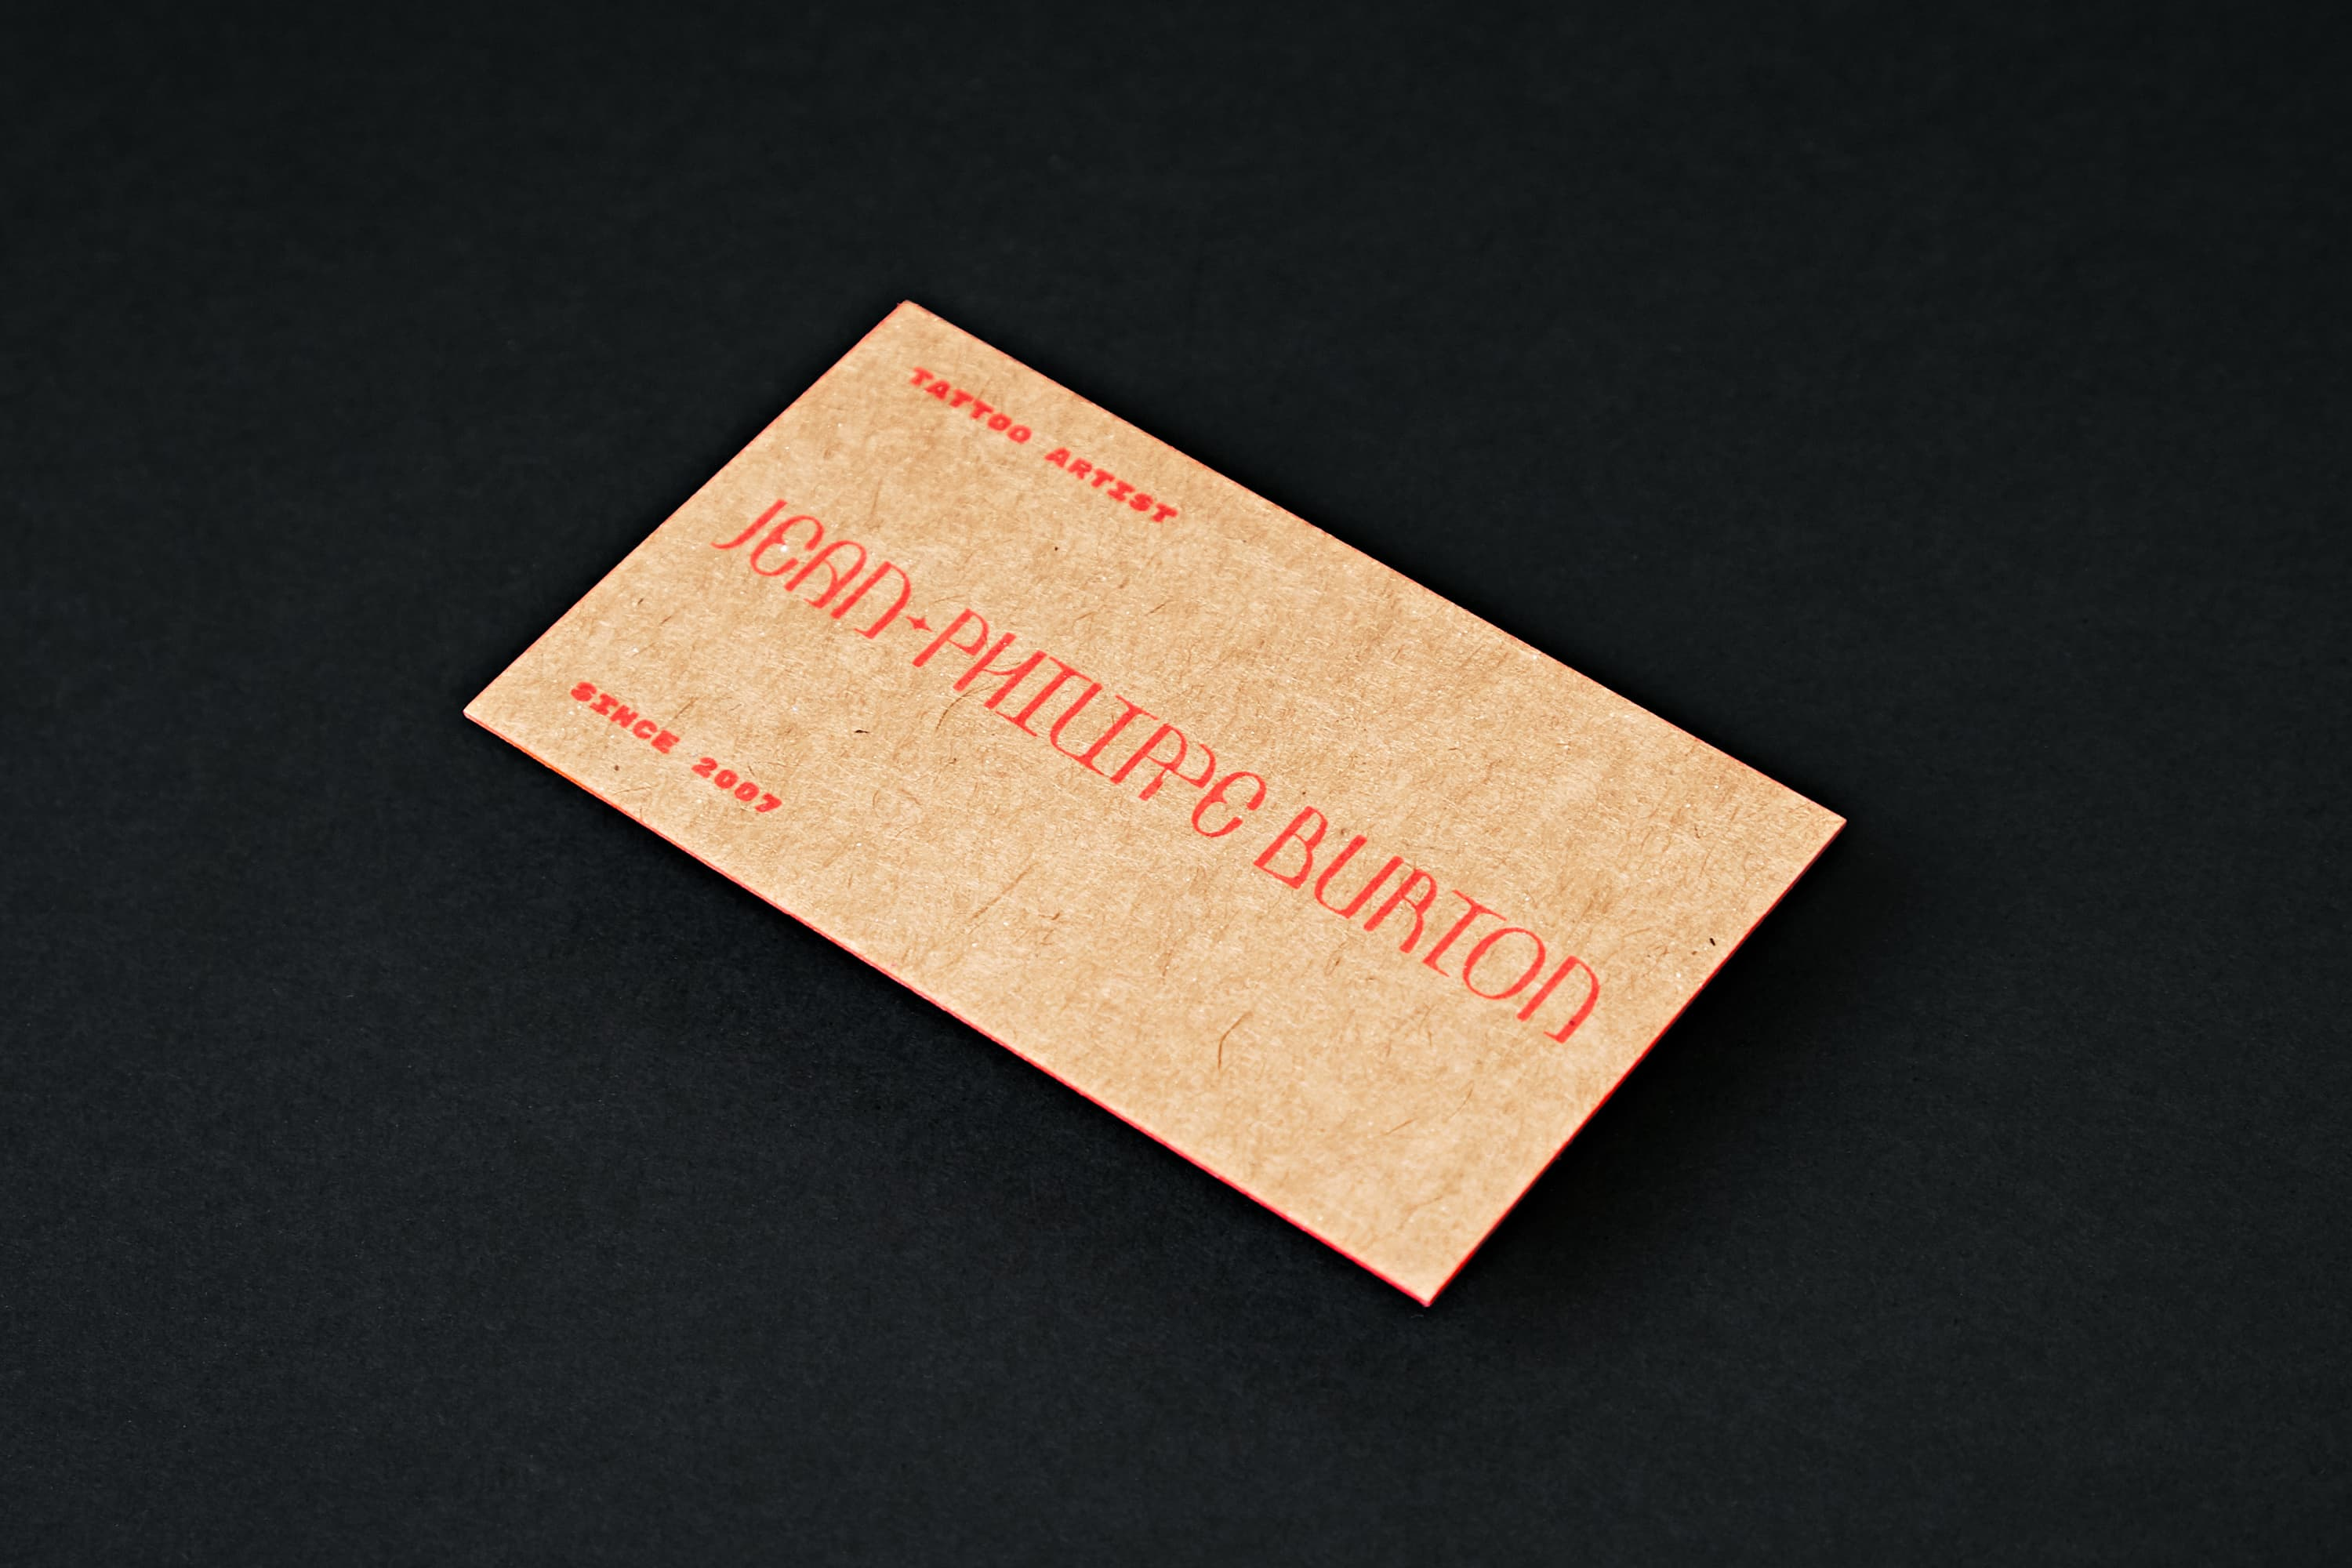 A tattoo artist identity for Burtonursaeminoris